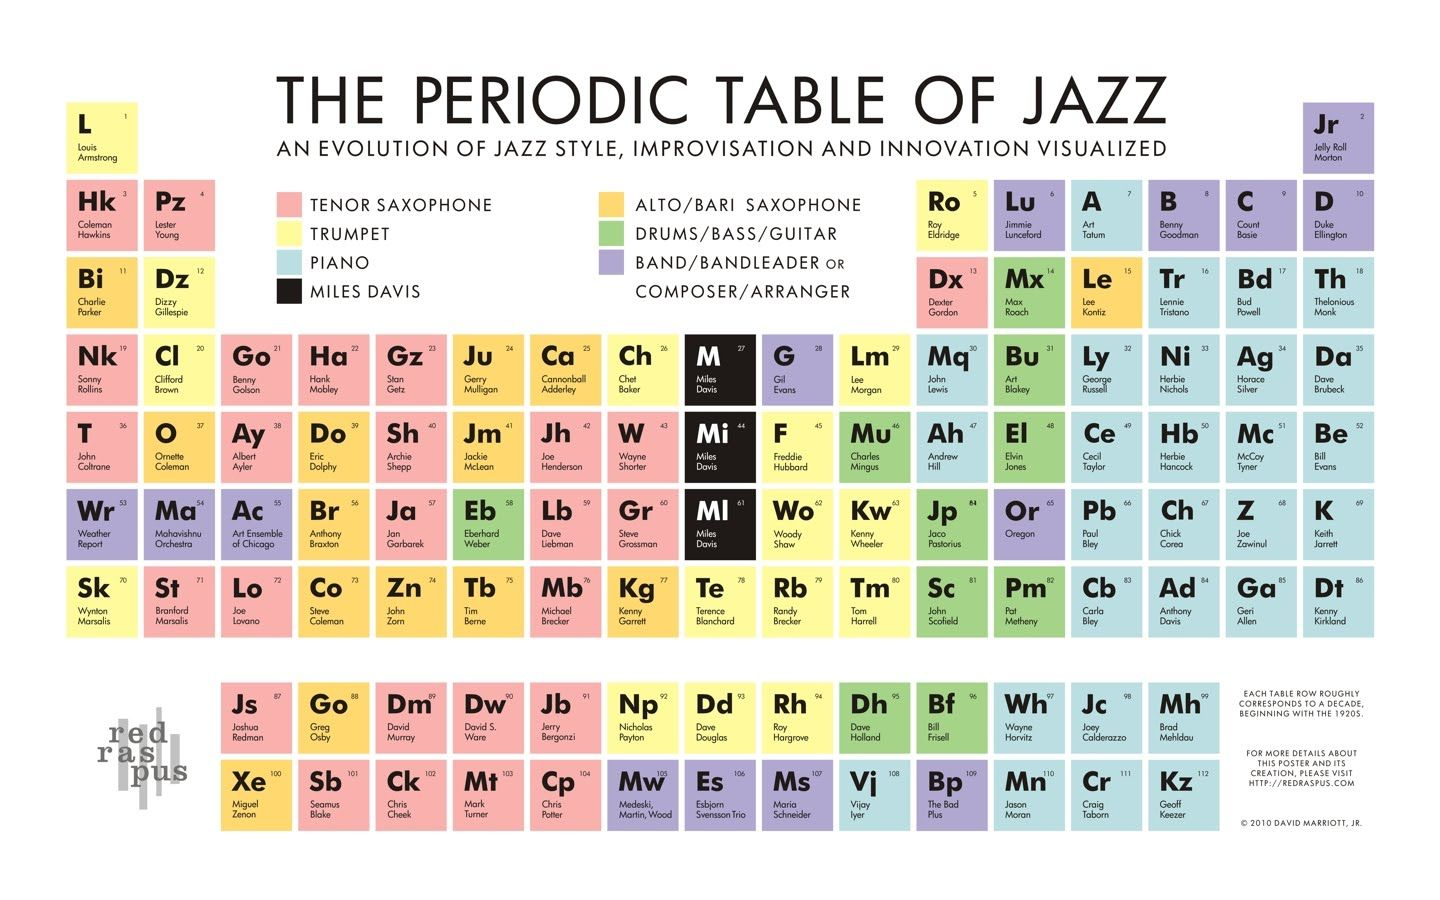 Fmula musical conhea a tabela peridica do jazz pinterest the periodic table of jazz httpsavenuetrimleswordpress201302periodic table of jazzg urtaz Image collections